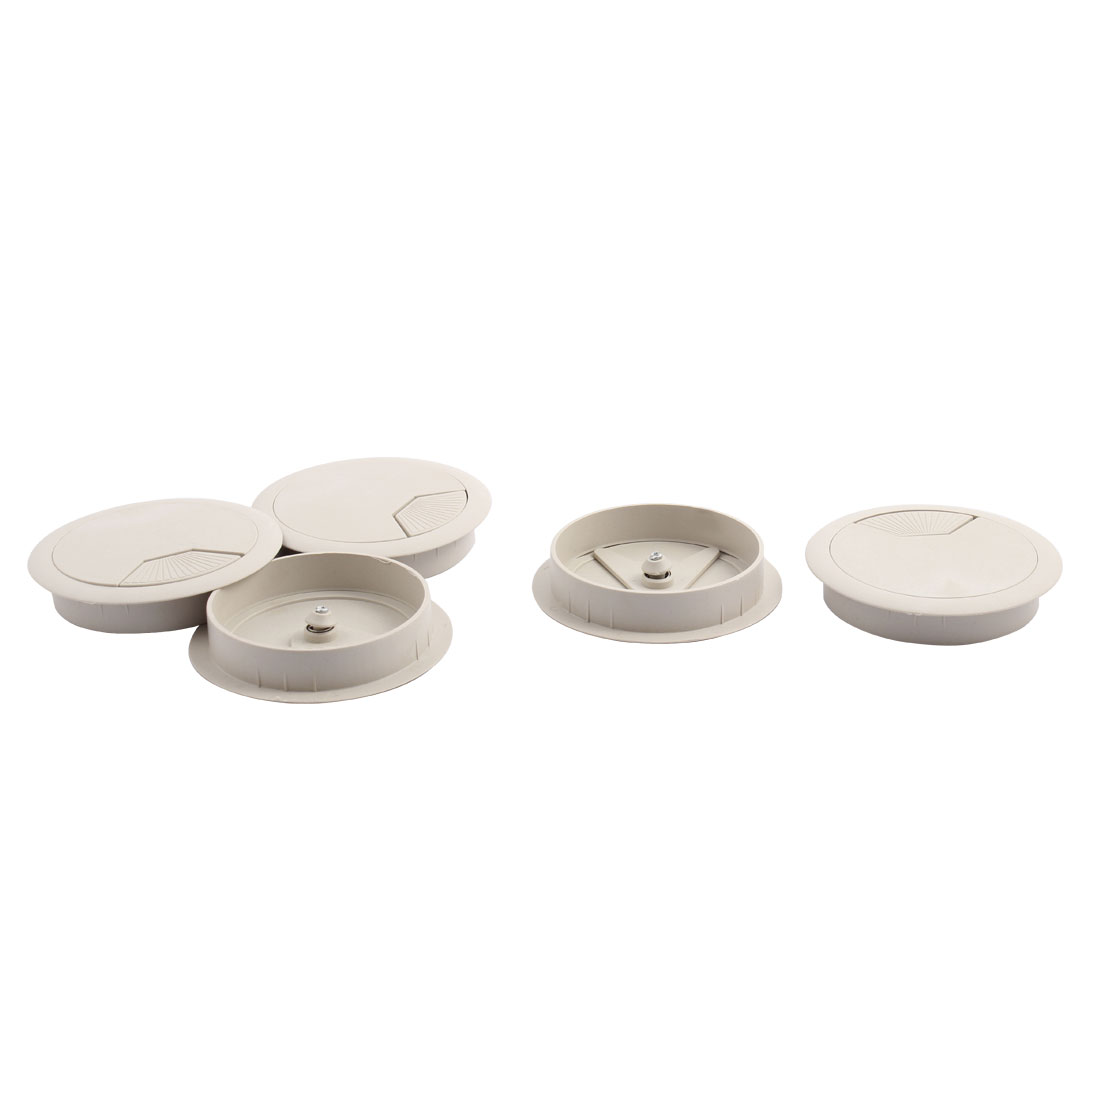 Home Office Computer Desk Plastic Round Grommet Tidy Cable Hole Cover Ash Gray 3.1 Inch Dia 5pcs